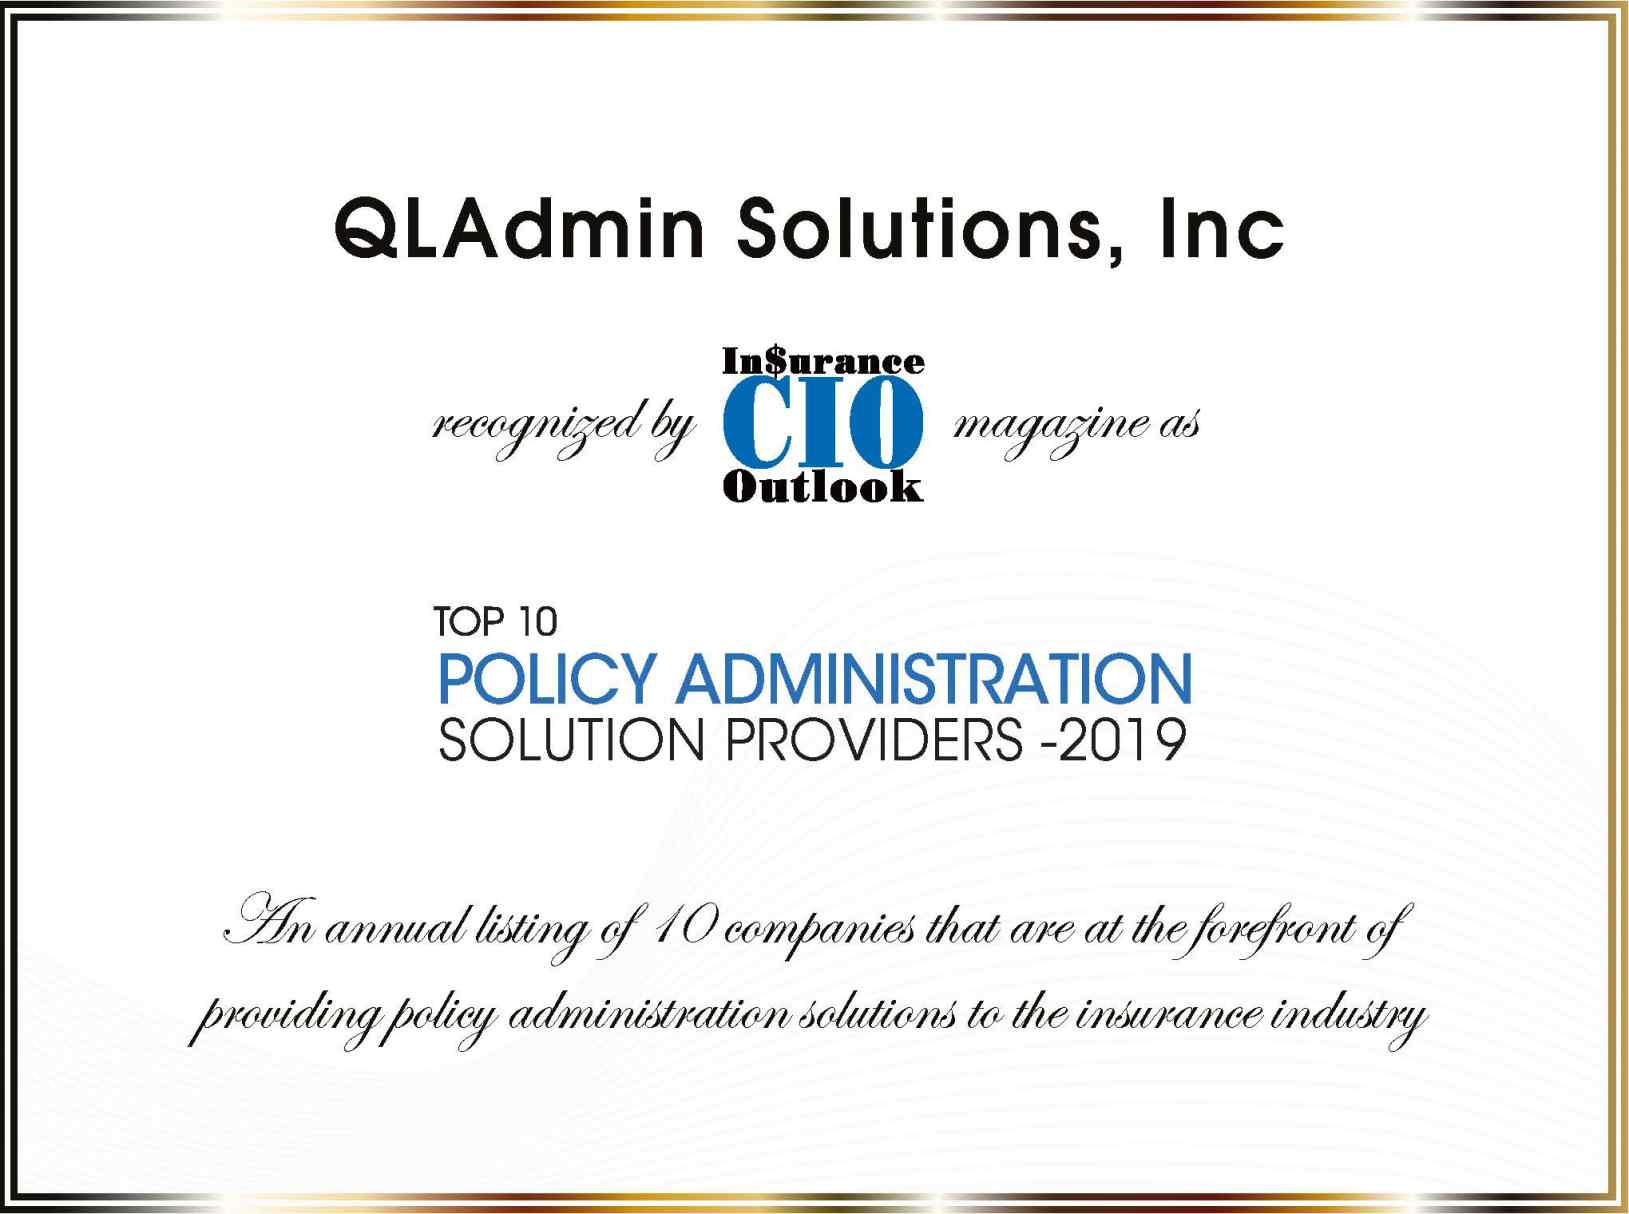 QLAdmin Solutions Top 10 PAS Provider 2019